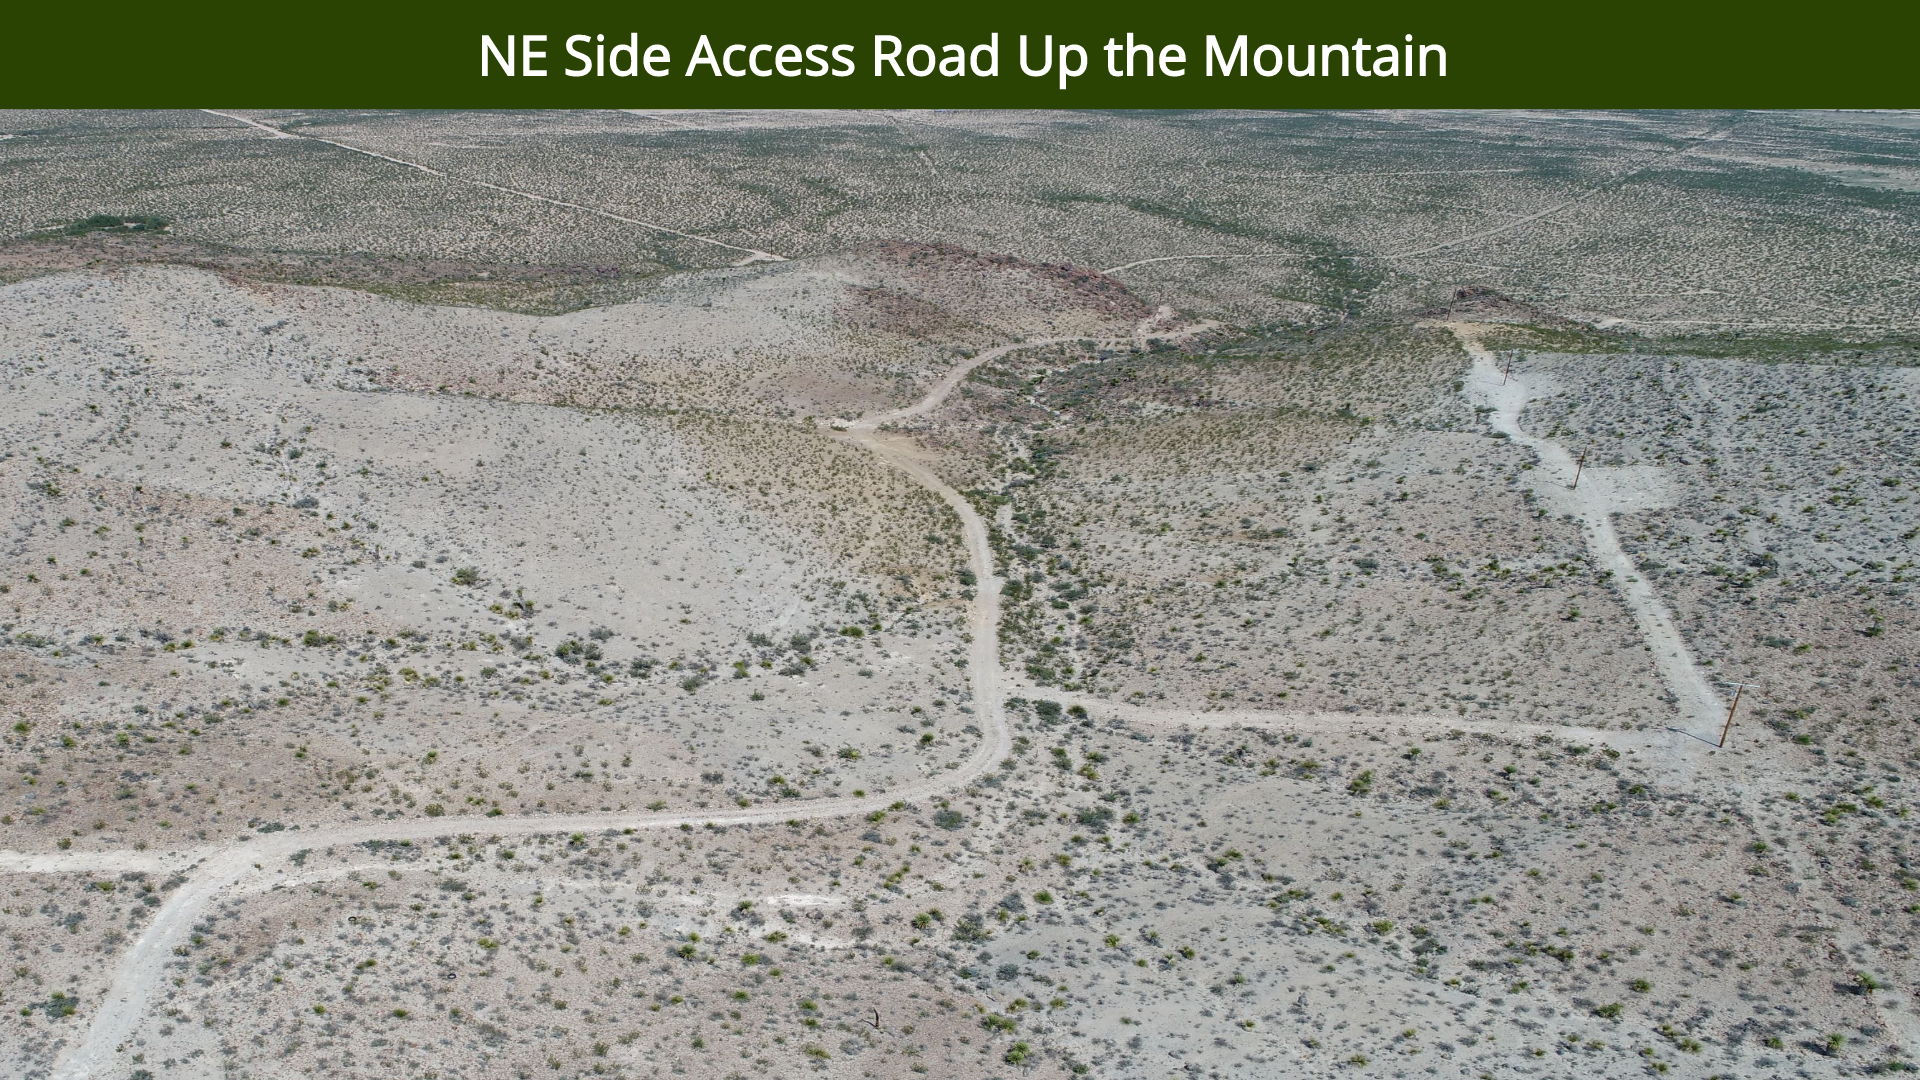 NE Side Access Road Up the Mountain